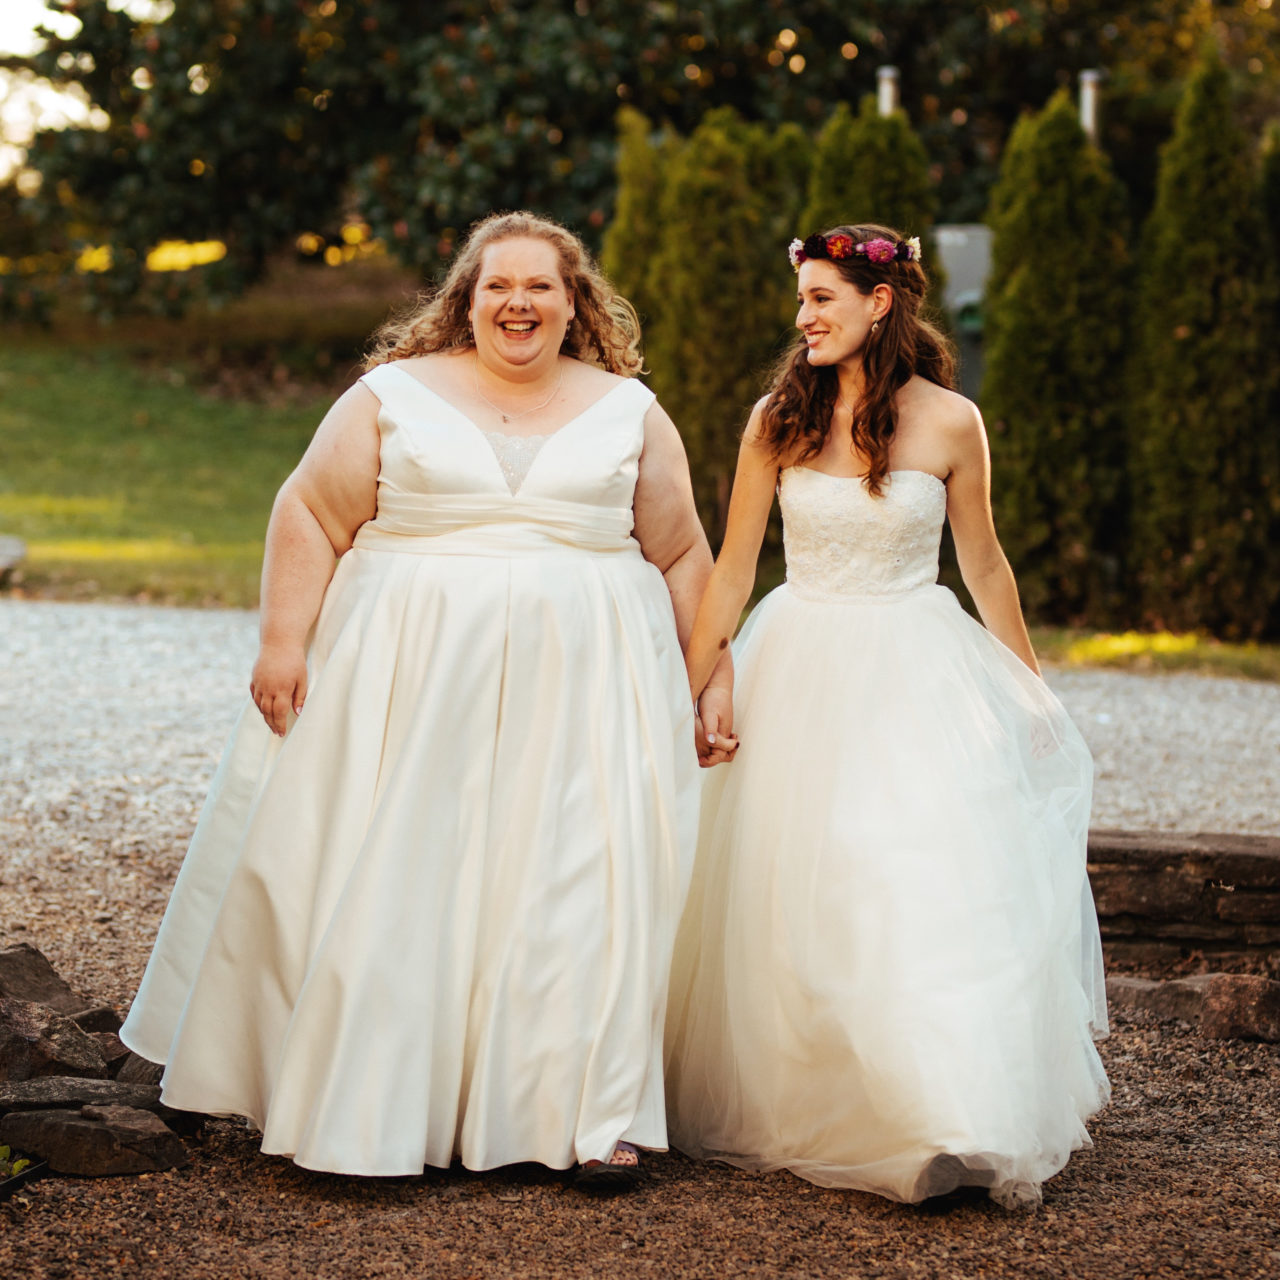 Two women in wedding dresses hold hands and walk together